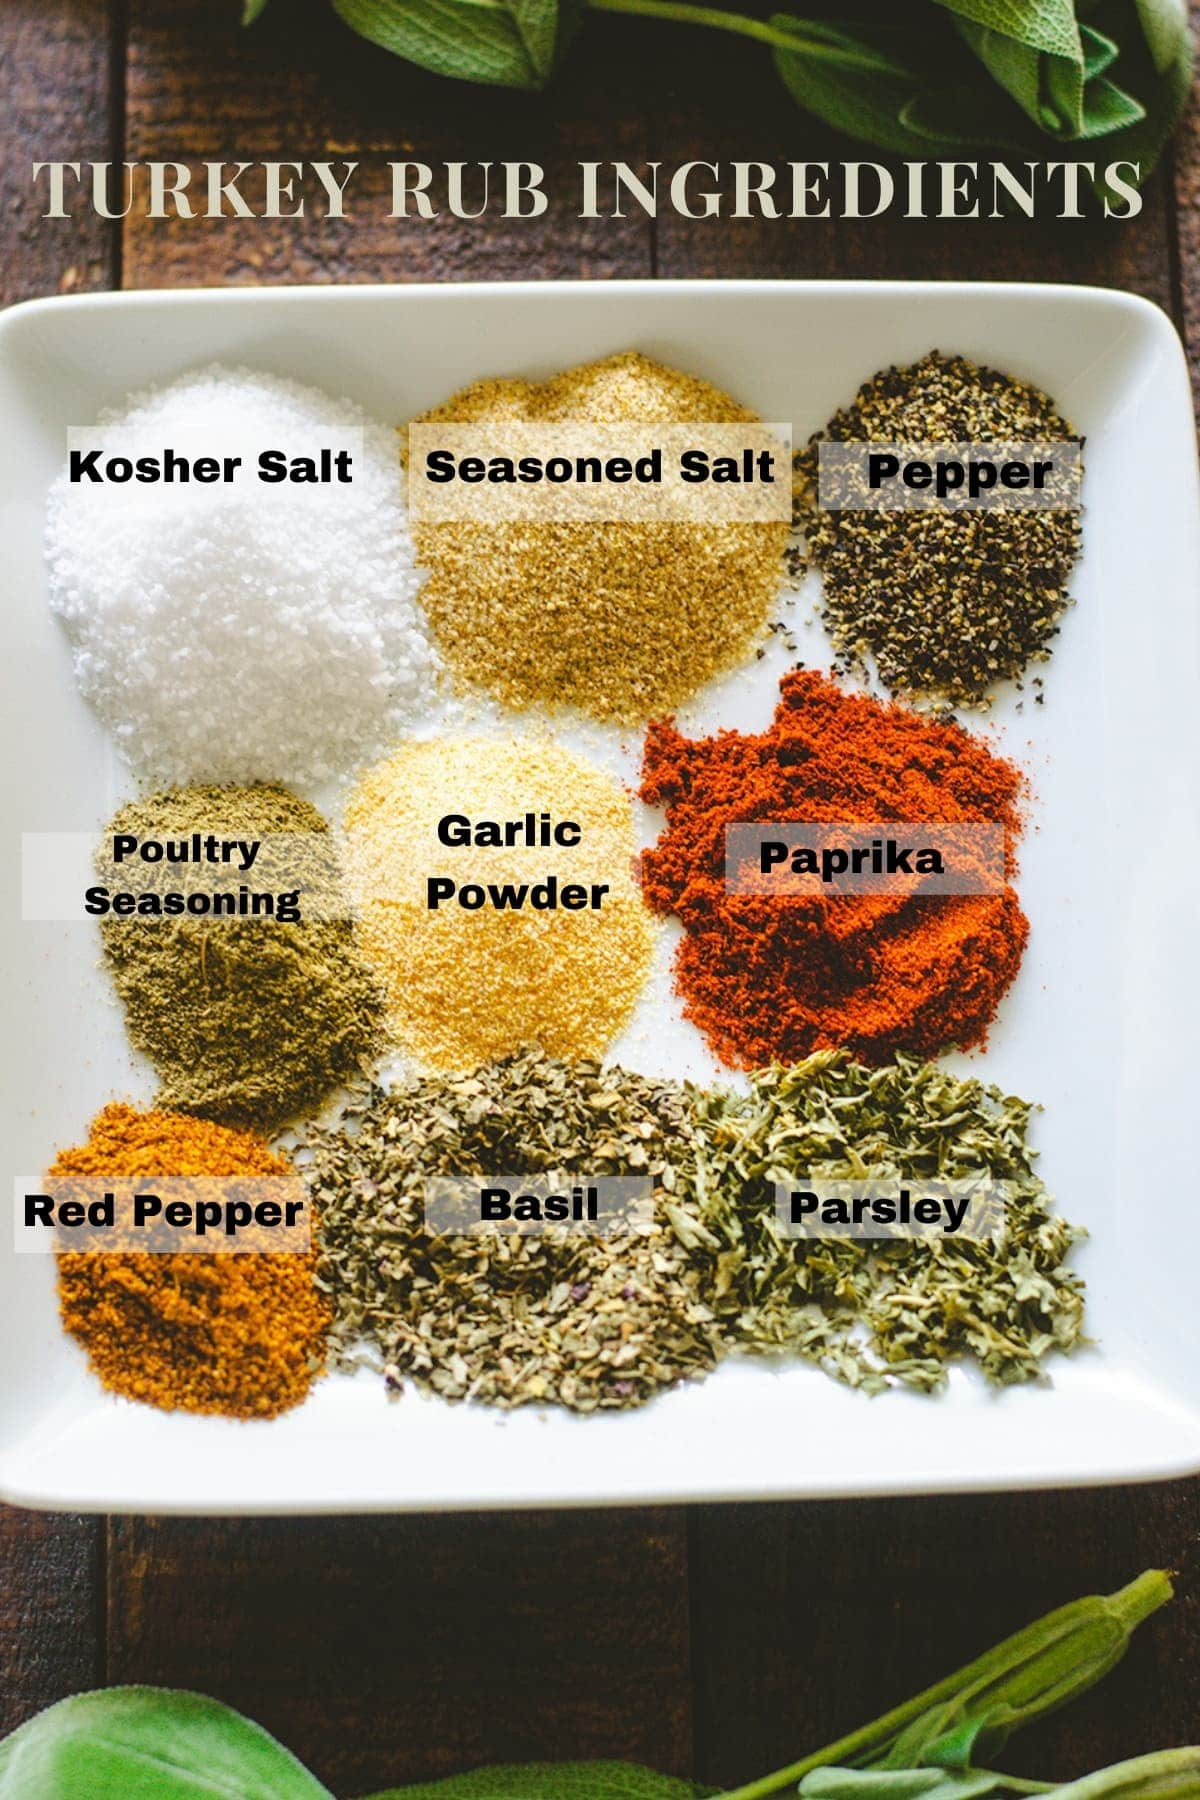 Turkey rub spices labeled by spice name on a white plate.